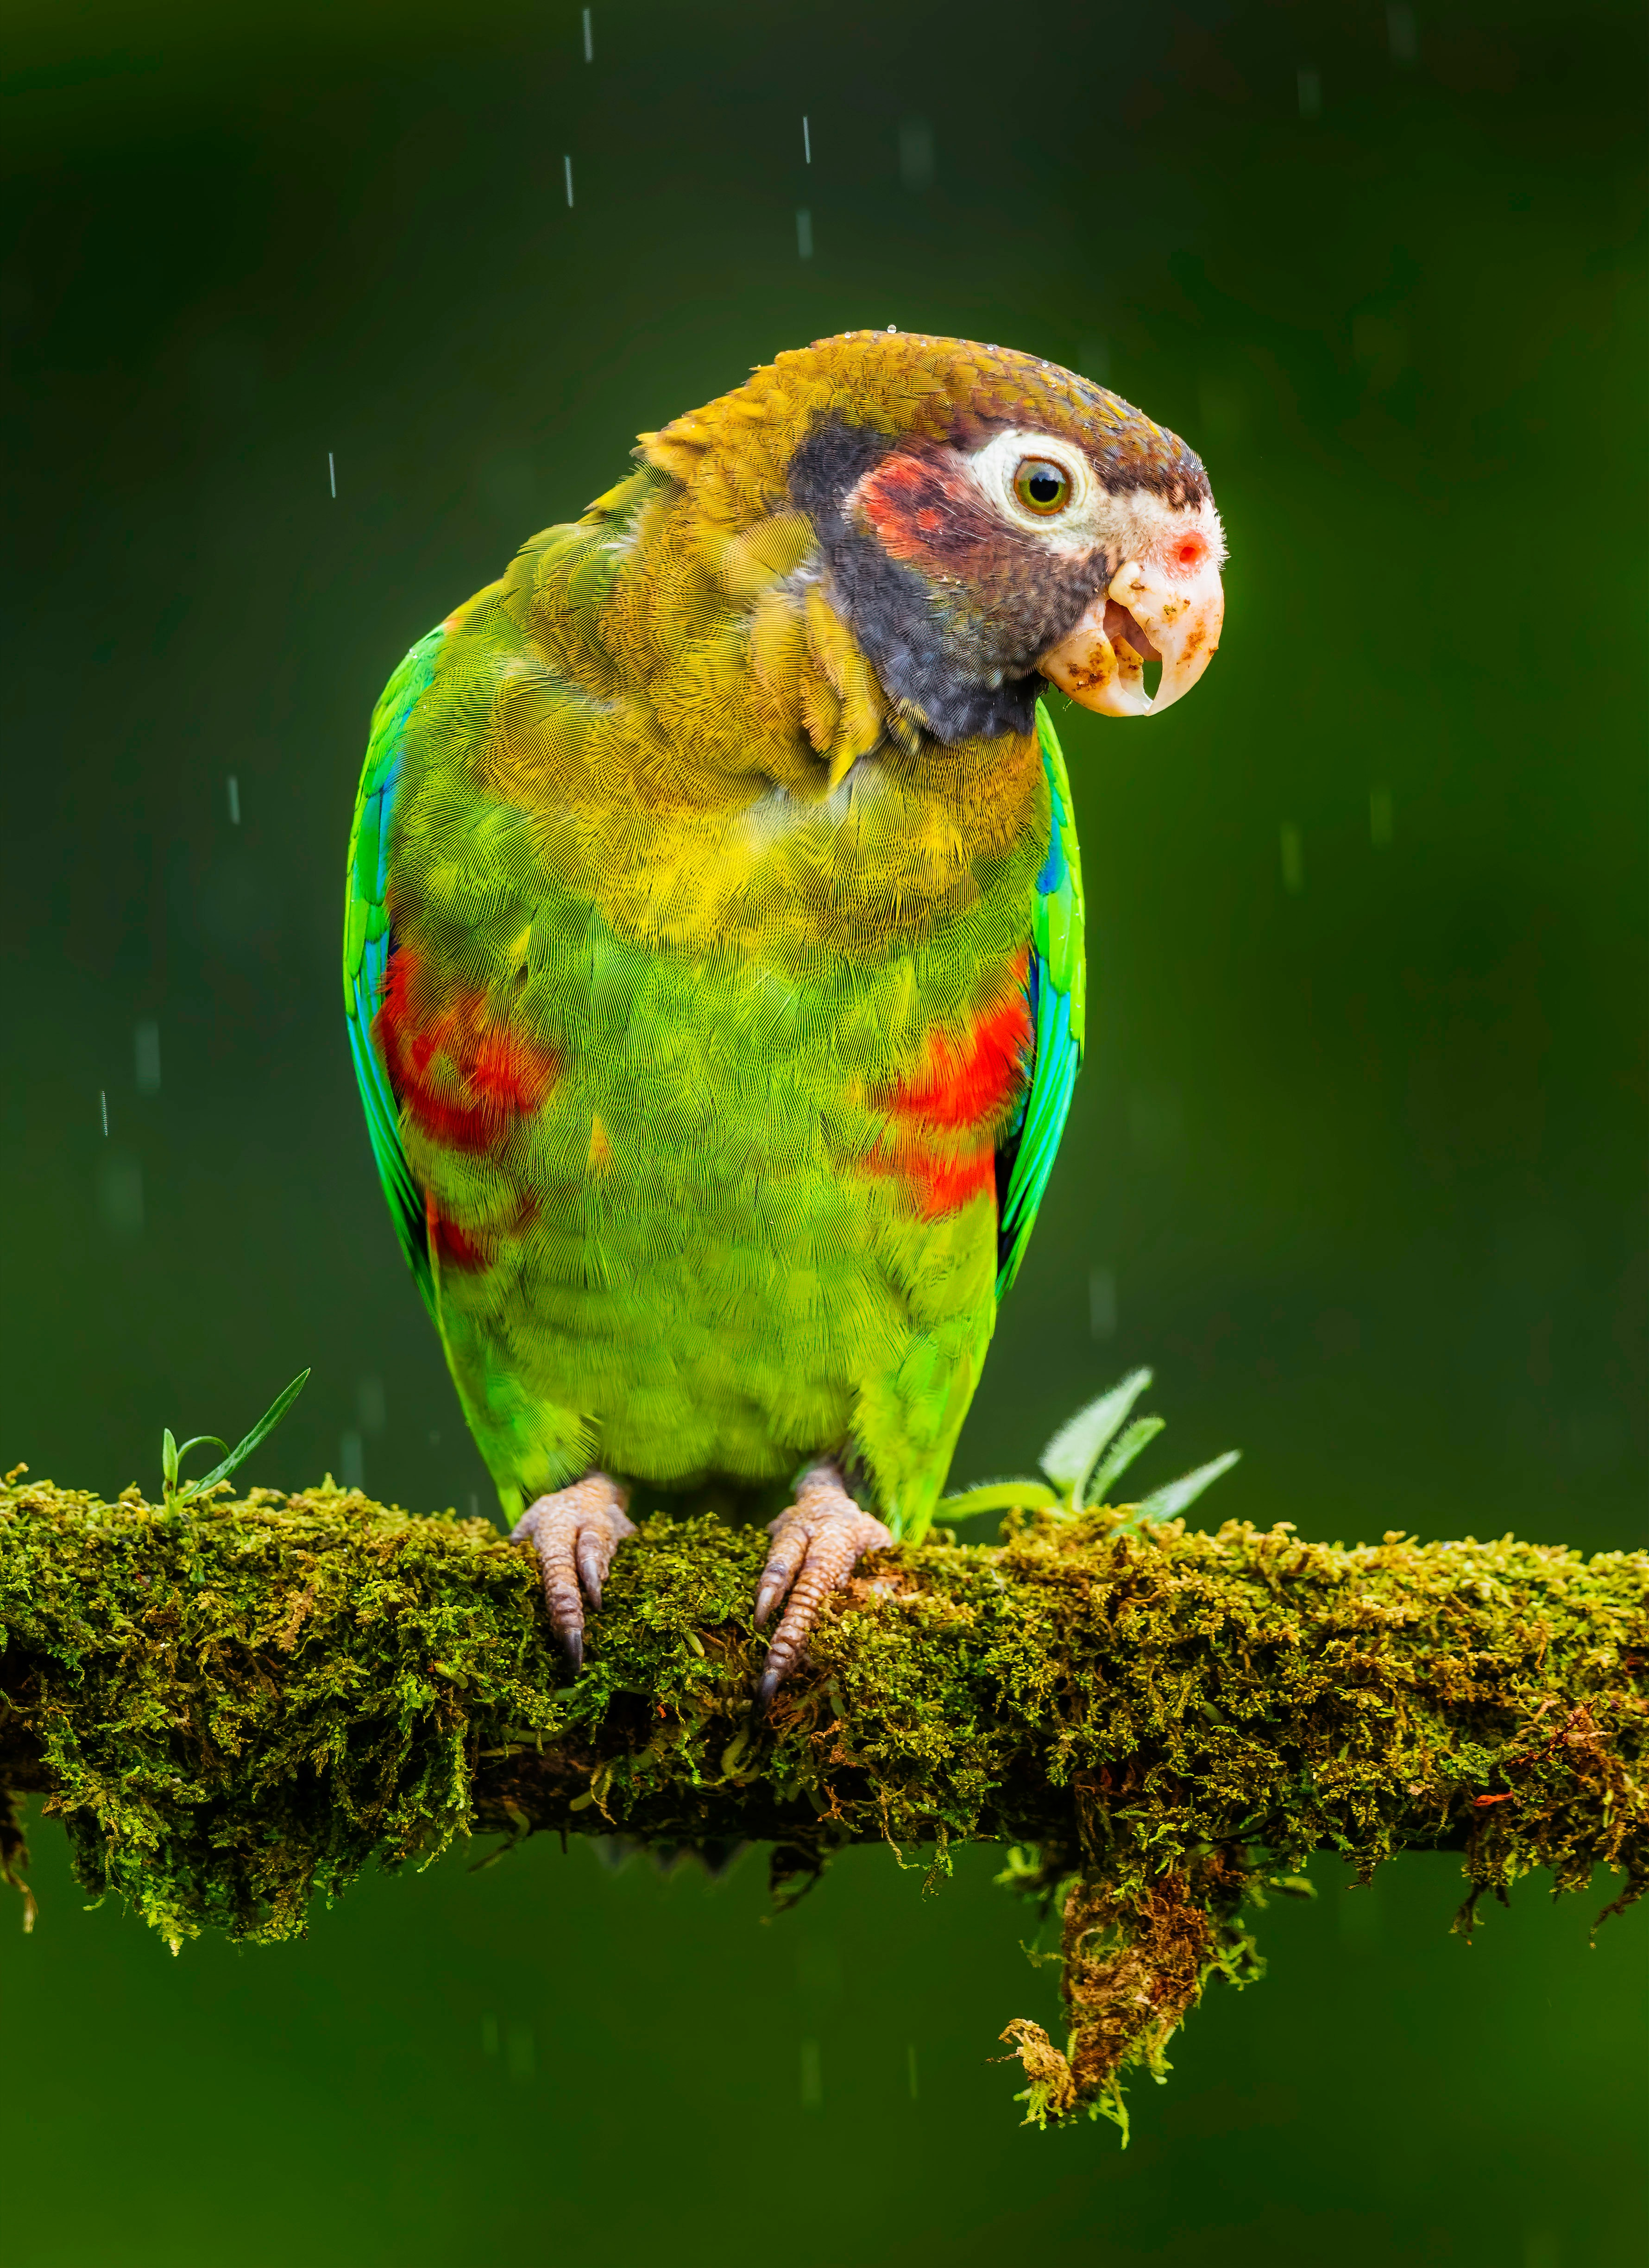 128378 download wallpaper Animals, Macaw, Parrots, Bird, Bright screensavers and pictures for free